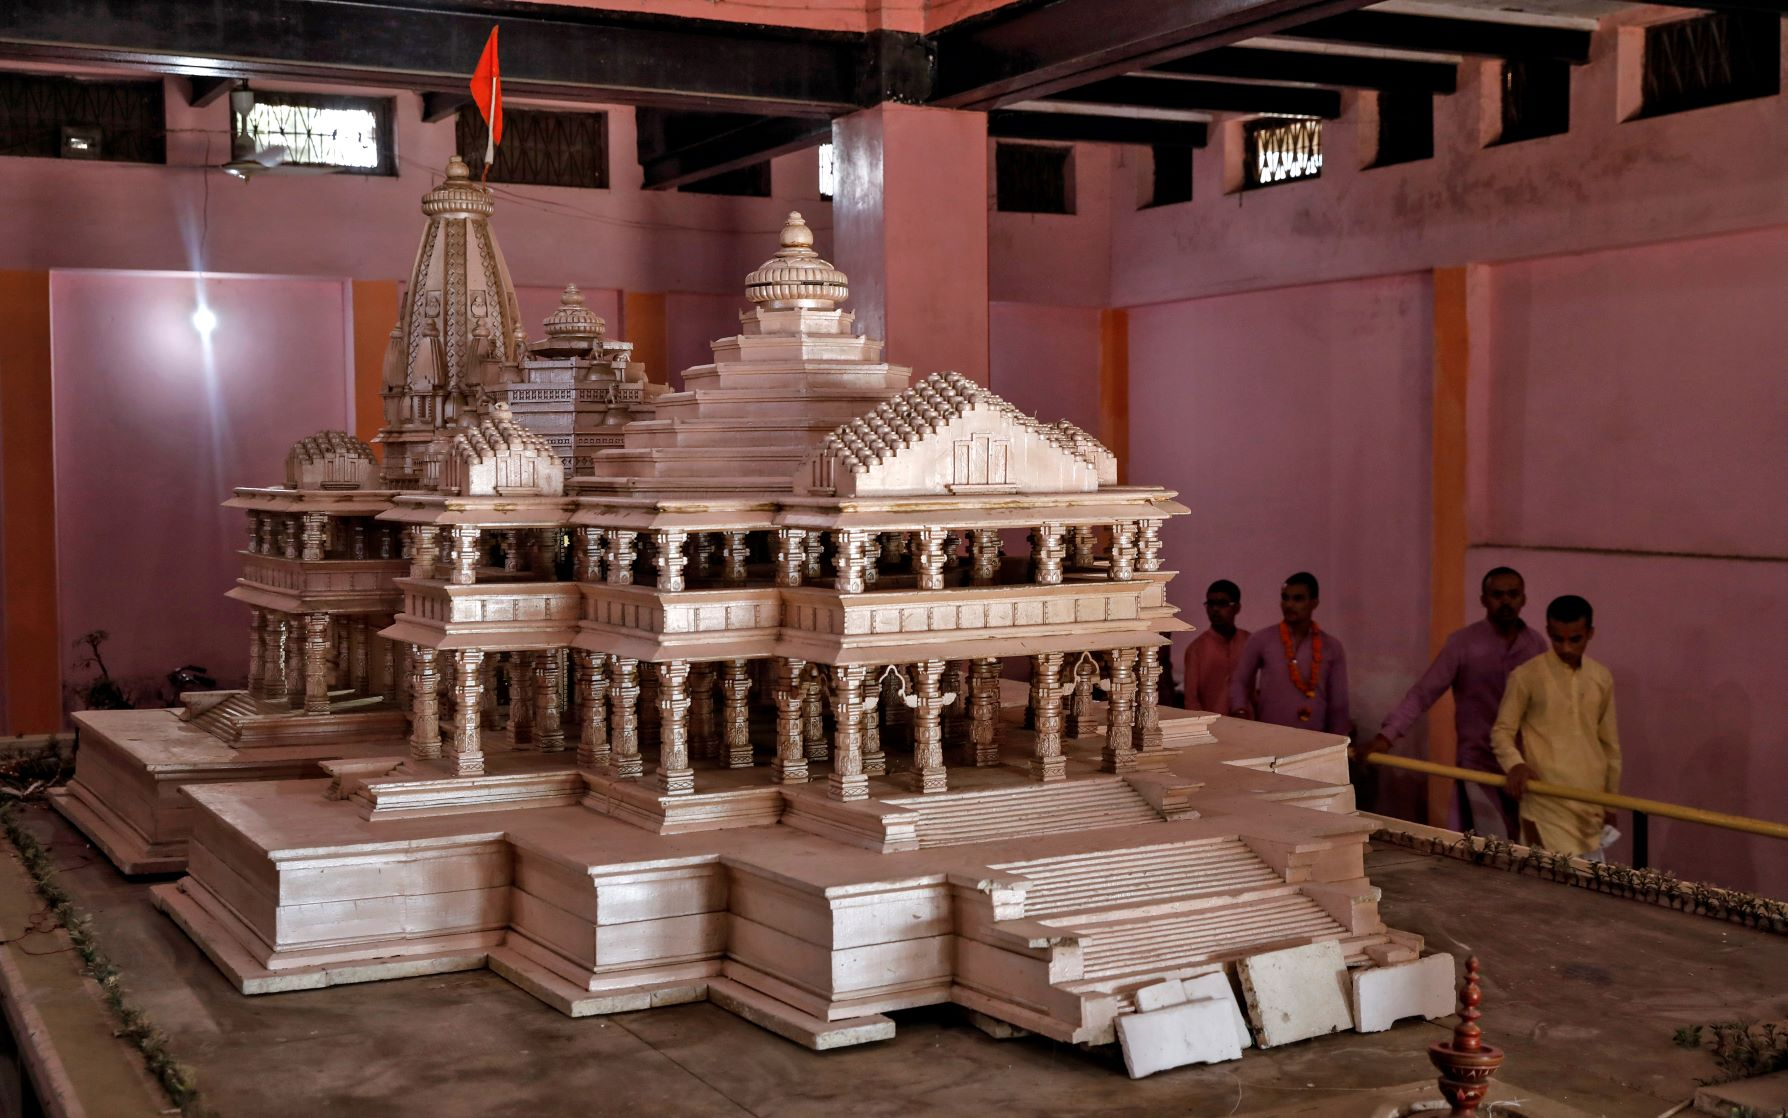 A proposed model of the Ram temple in Ayodhya